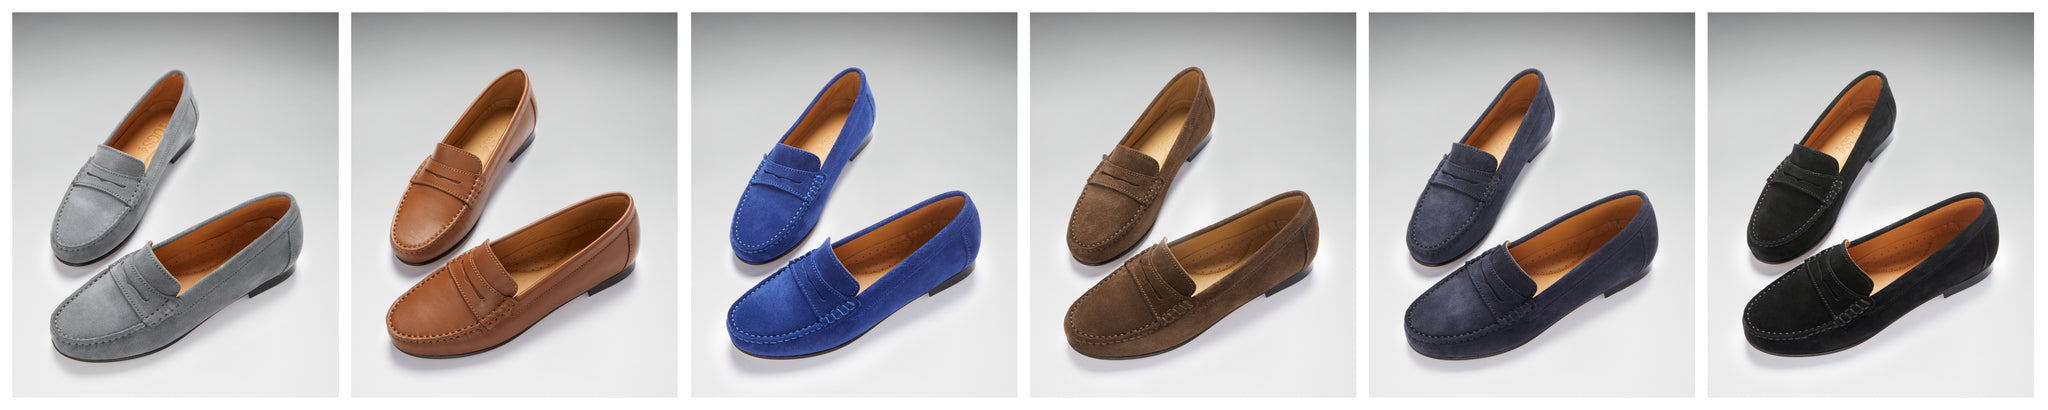 hugs & co women's penny loafers